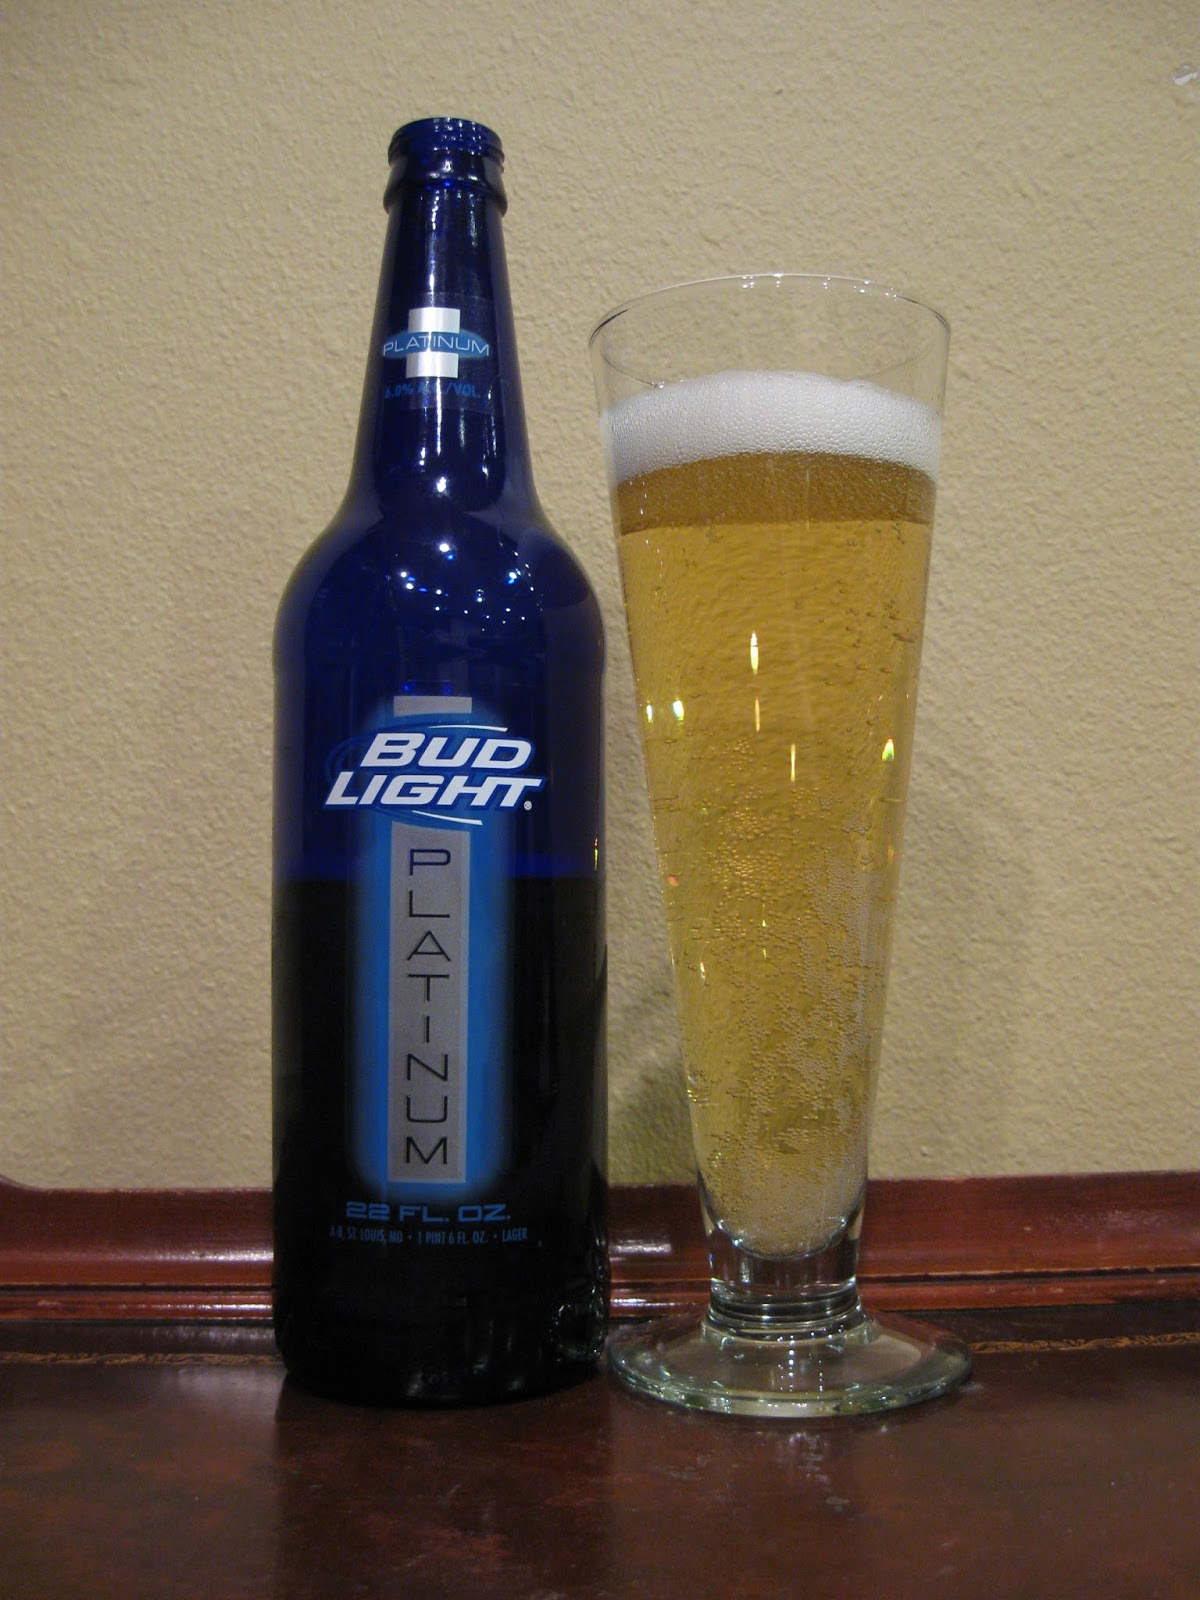 budweiser analysis Is it time for the king of beers to hand over its crown preliminary analysis of national 2017 beer sales indicates that, for the first time in decades, budweiser is no longer one of the top three beer brands sold in the united states bud light, which has been the best-selling beer in america since.